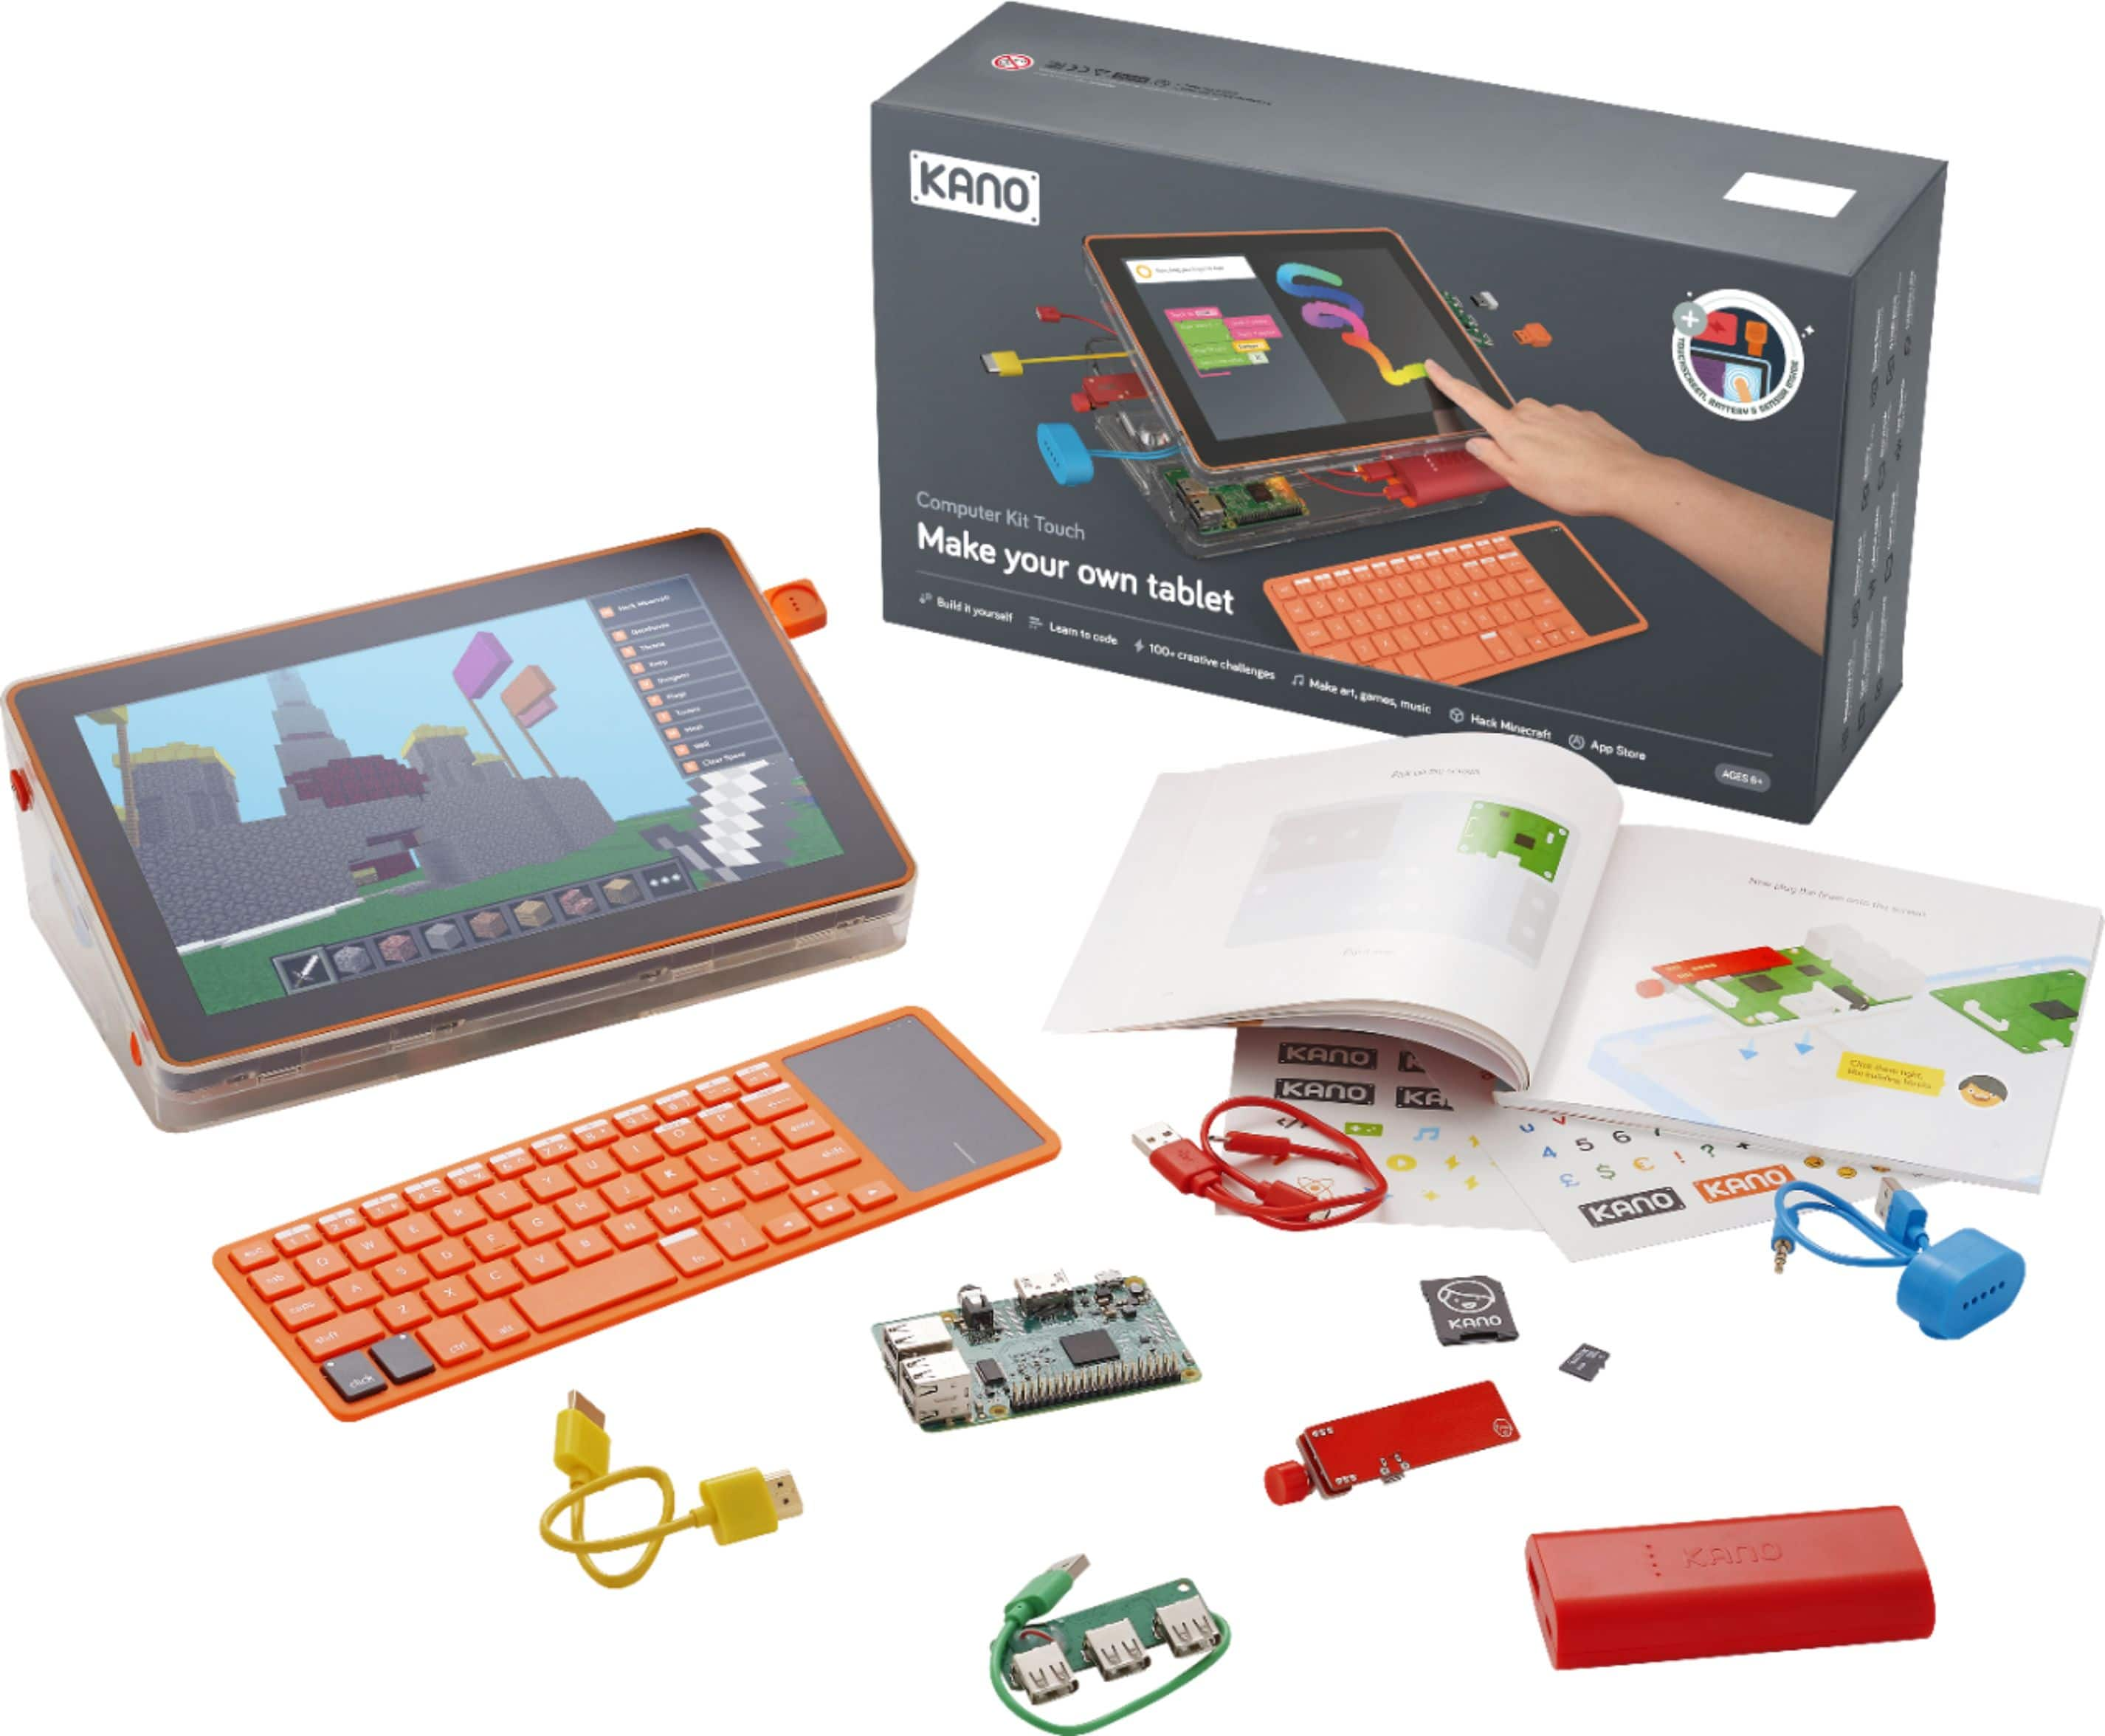 Kano Computer Kit Touch - Best Buy $113